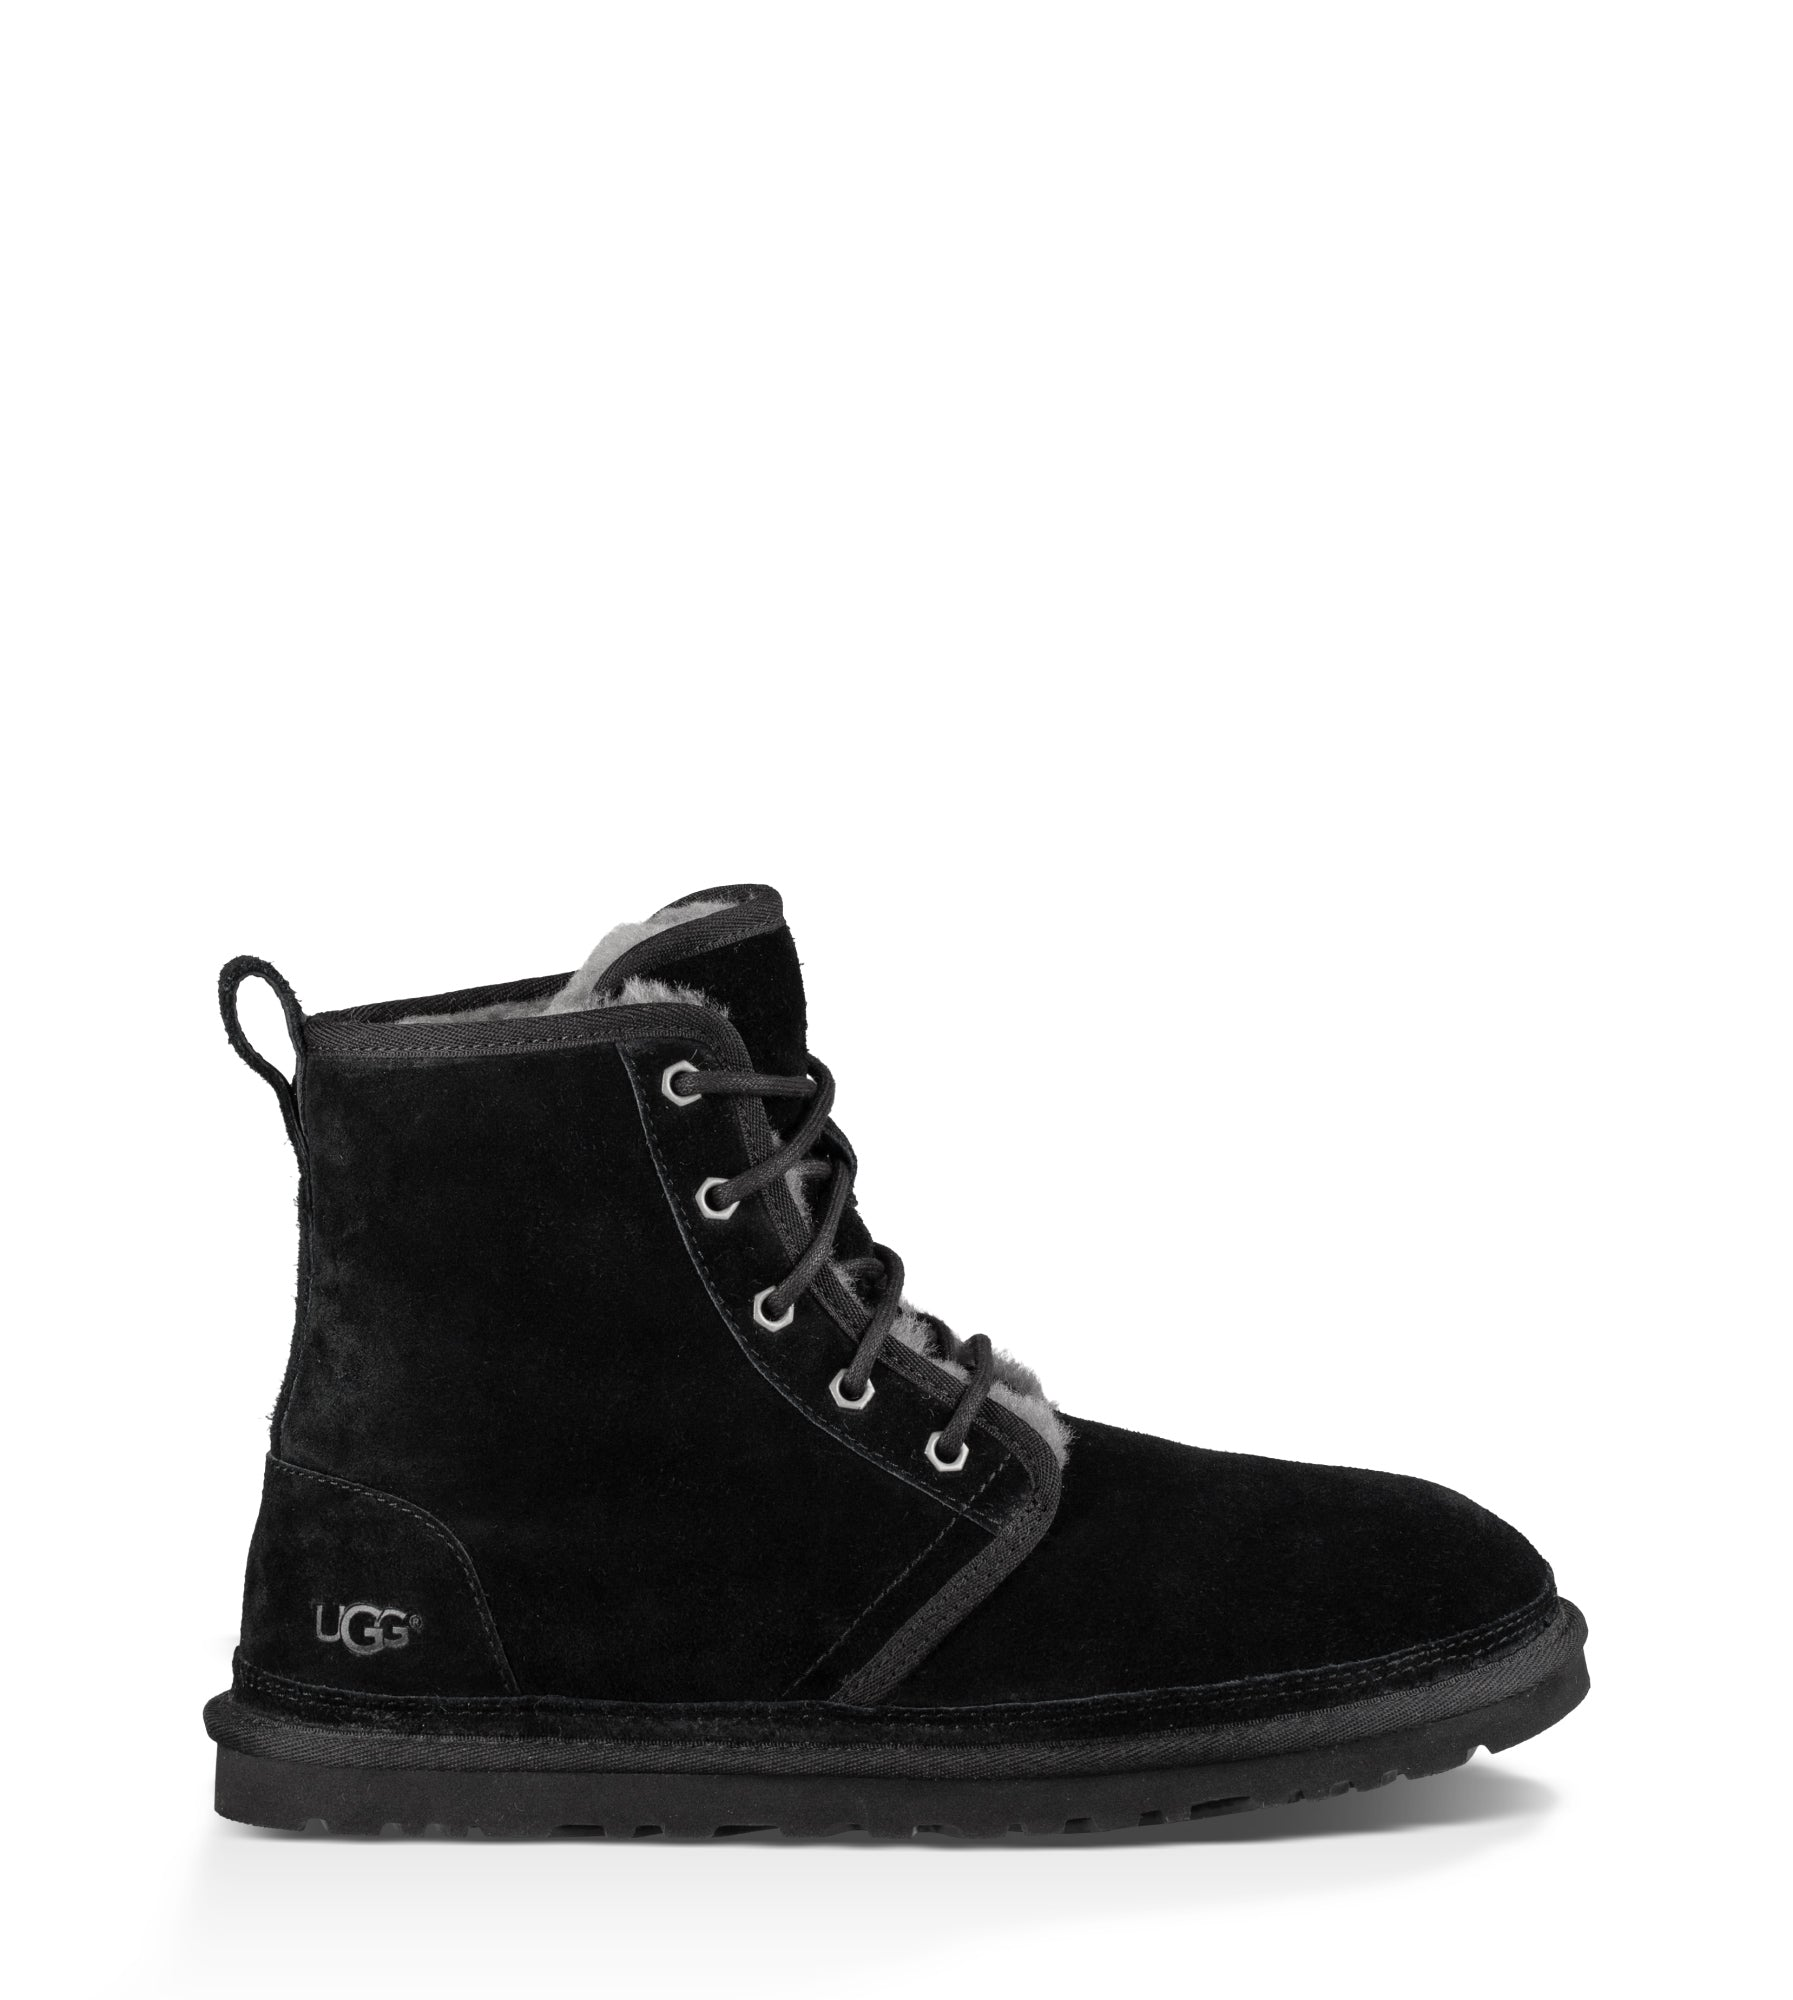 UGG Australia Men's Harkley in Black